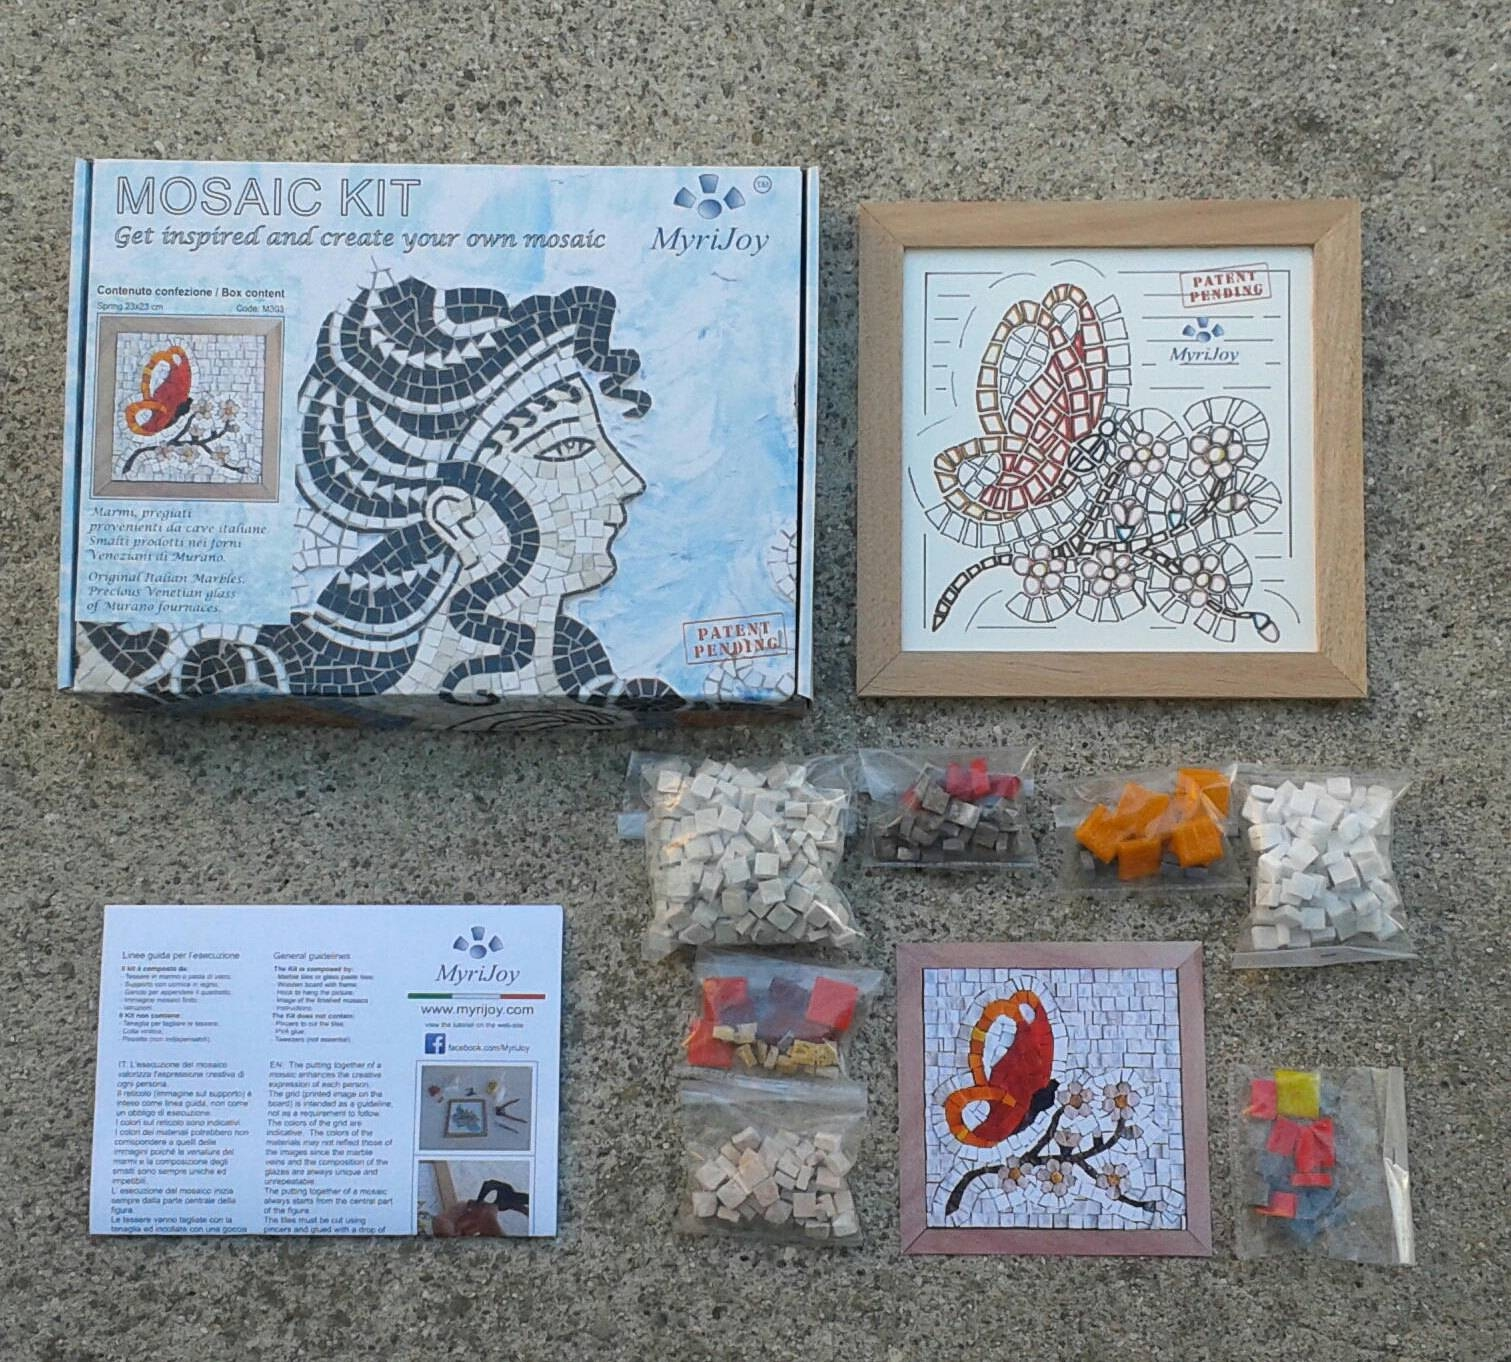 One Of A Kind Gift Mosaic Art Kit Four Seasons Spring – Crafts For Intended For Most Recently Released Mosaic Art Kits For Adults (View 16 of 20)